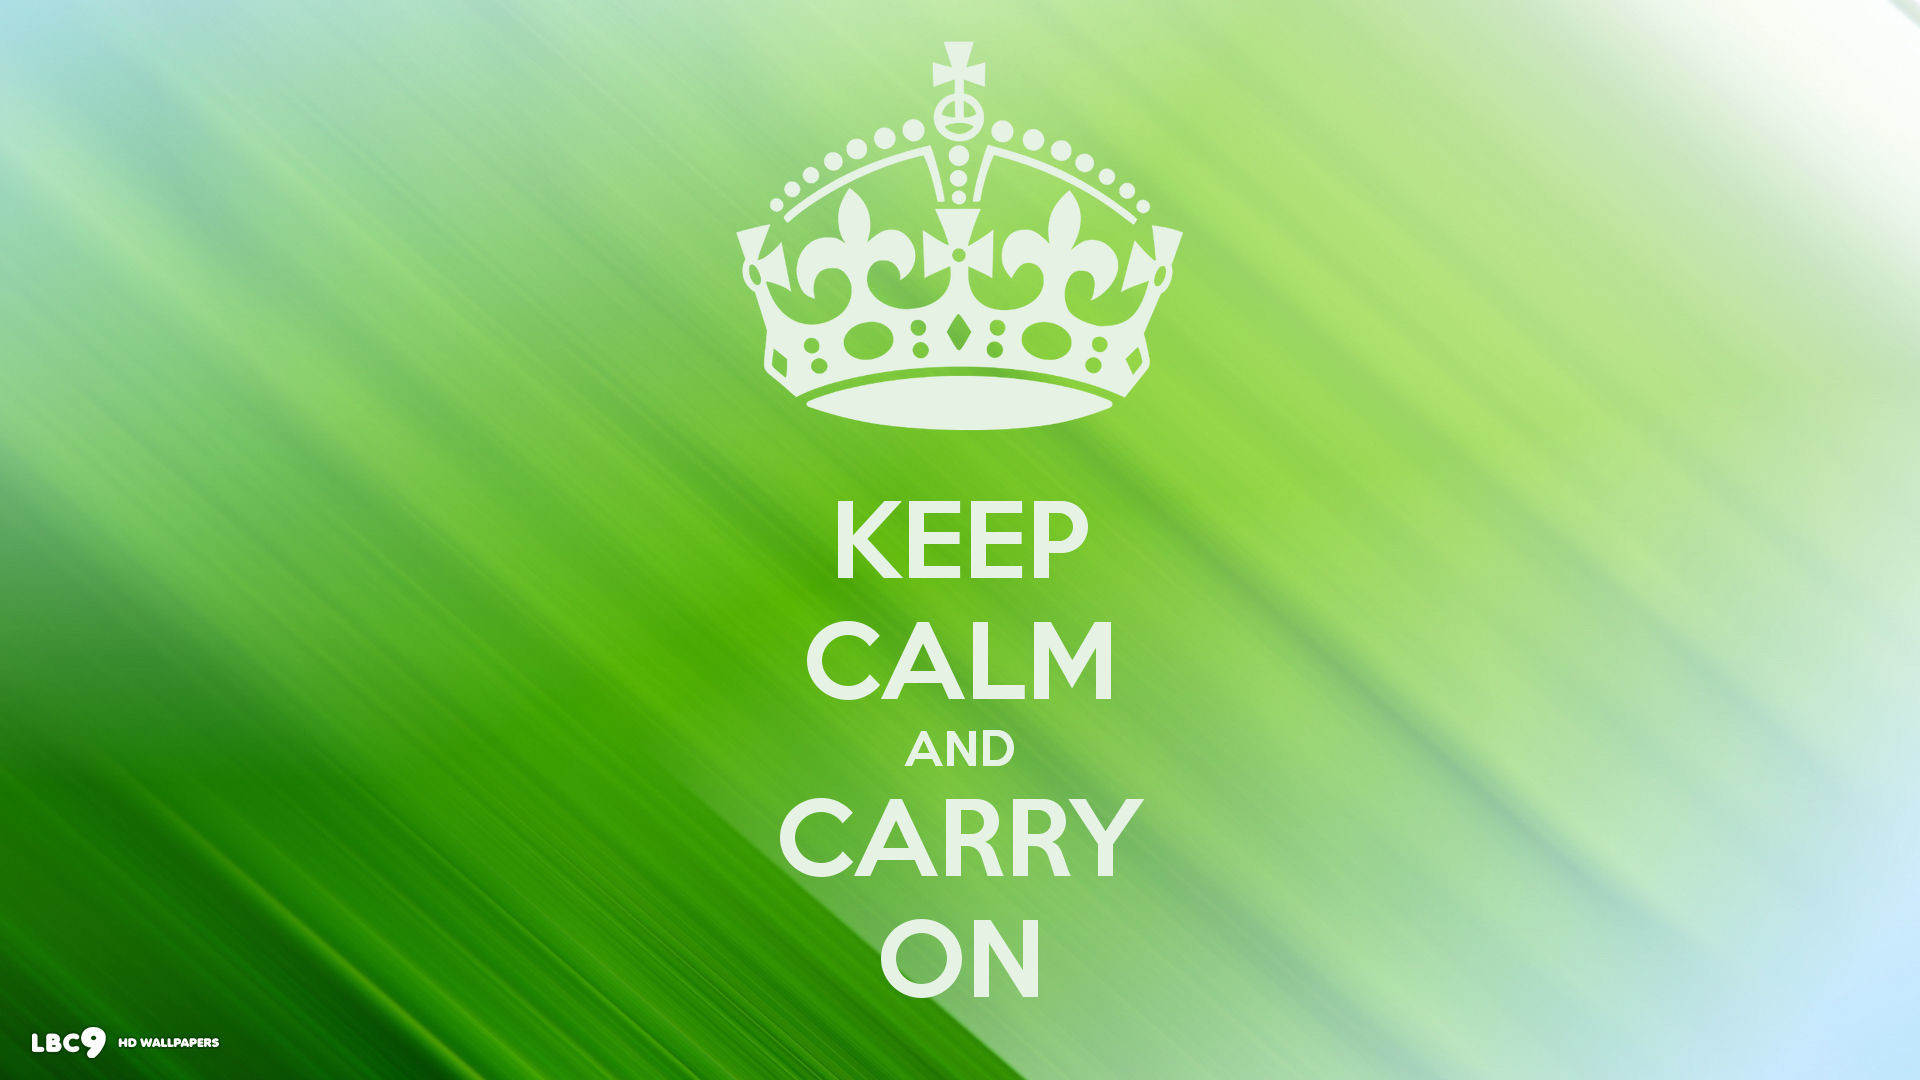 1920x1080 Keep Calm And Carry On Wallpaper Pink : Keep calm and carry on wallpaper  for desktop